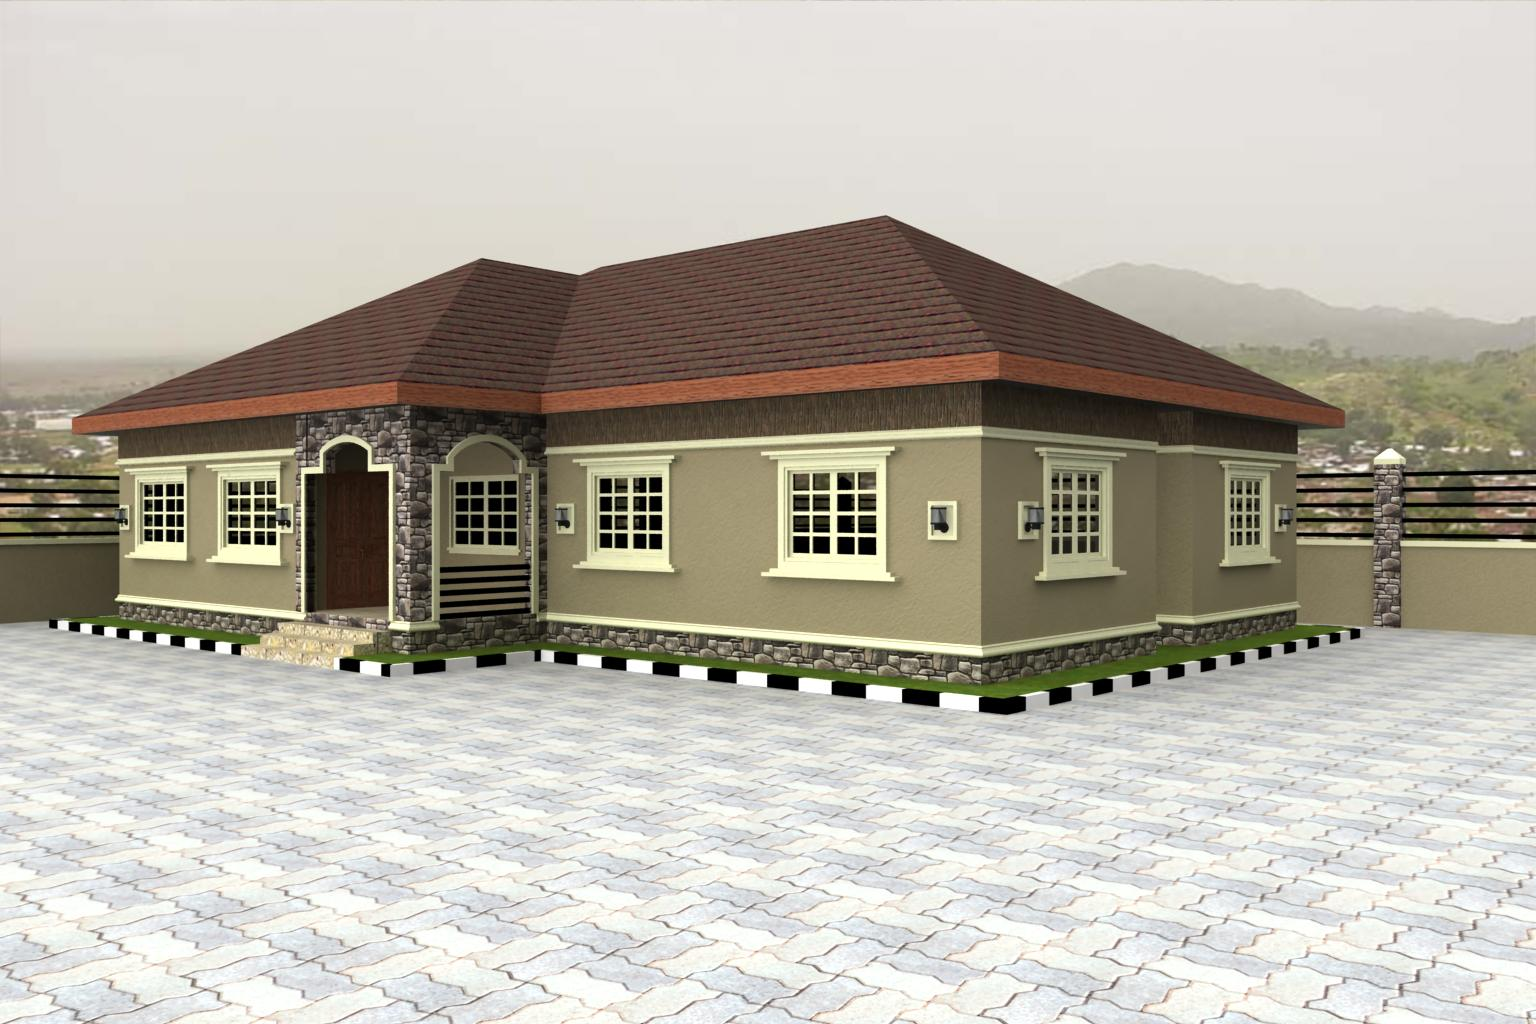 Home plans for bungalows in nigeria properties 4 for Nigeria building plans and designs